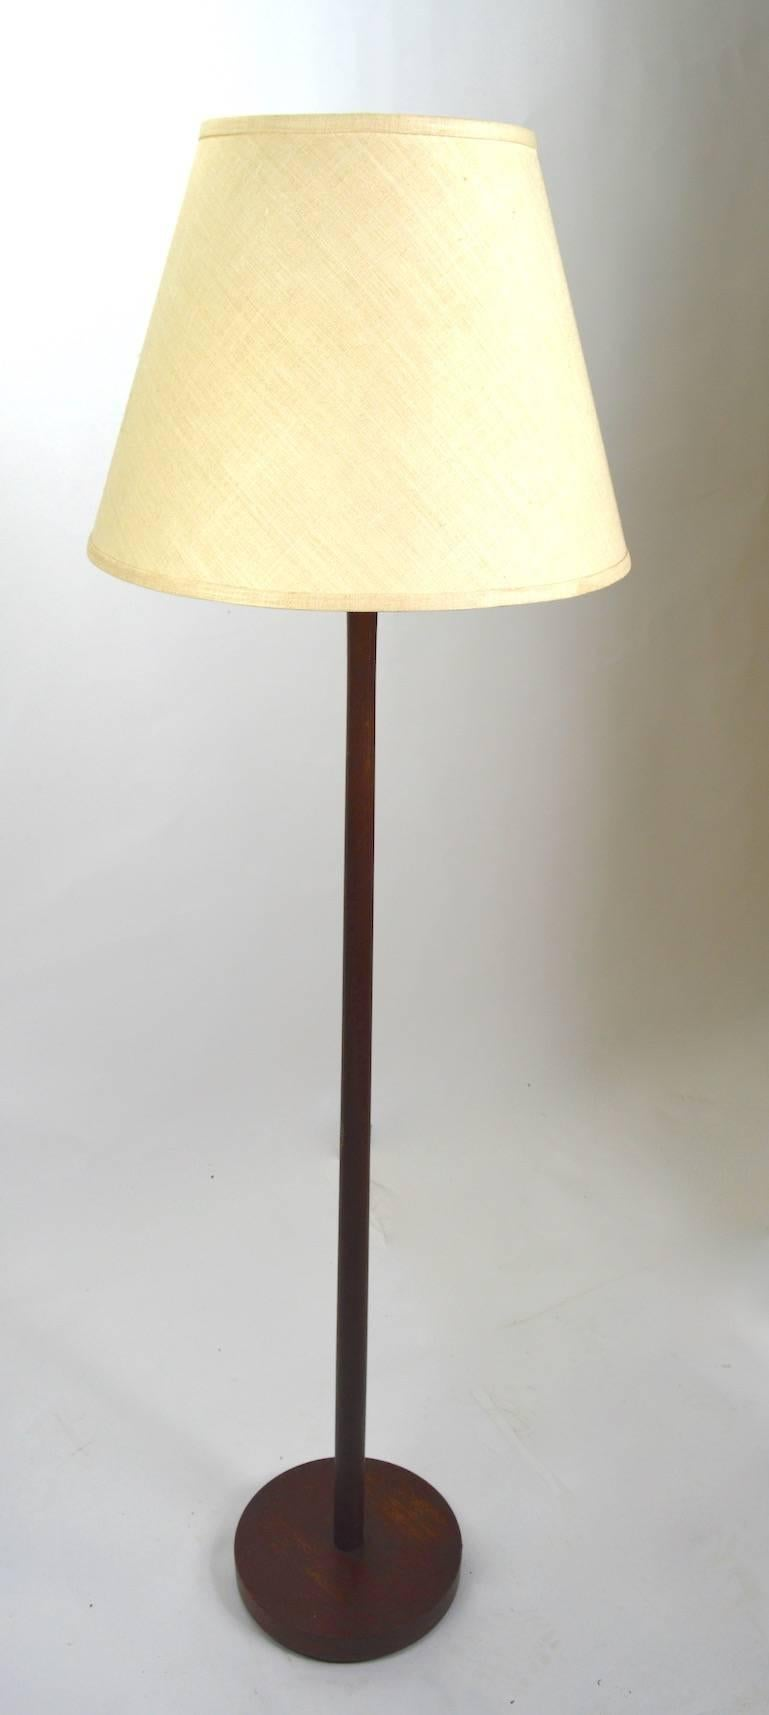 Wood Pole Lamps With Original Shades, By The Laurel Lamp Company. Elegant  Sophisticated Form